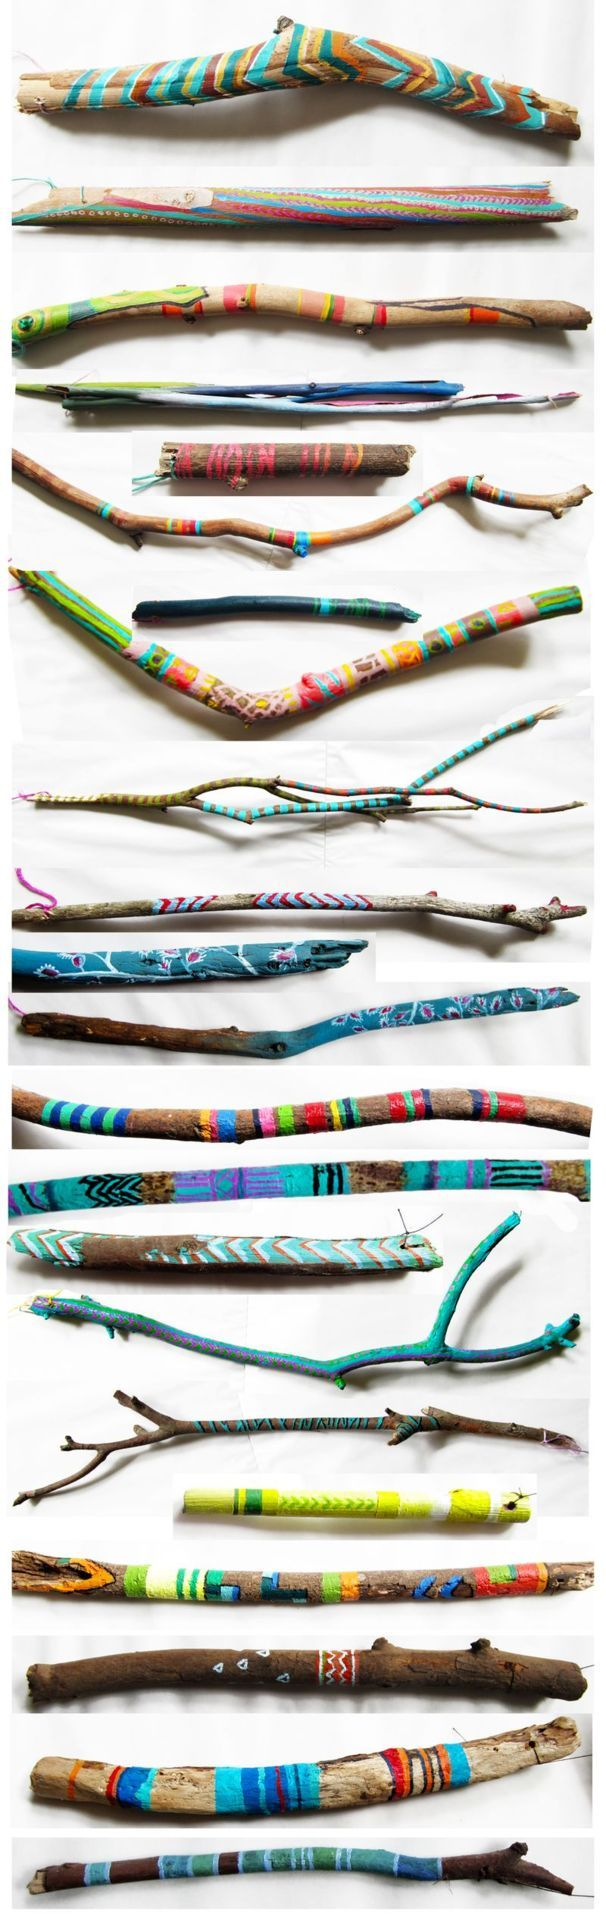 Painted twigs & driftwood